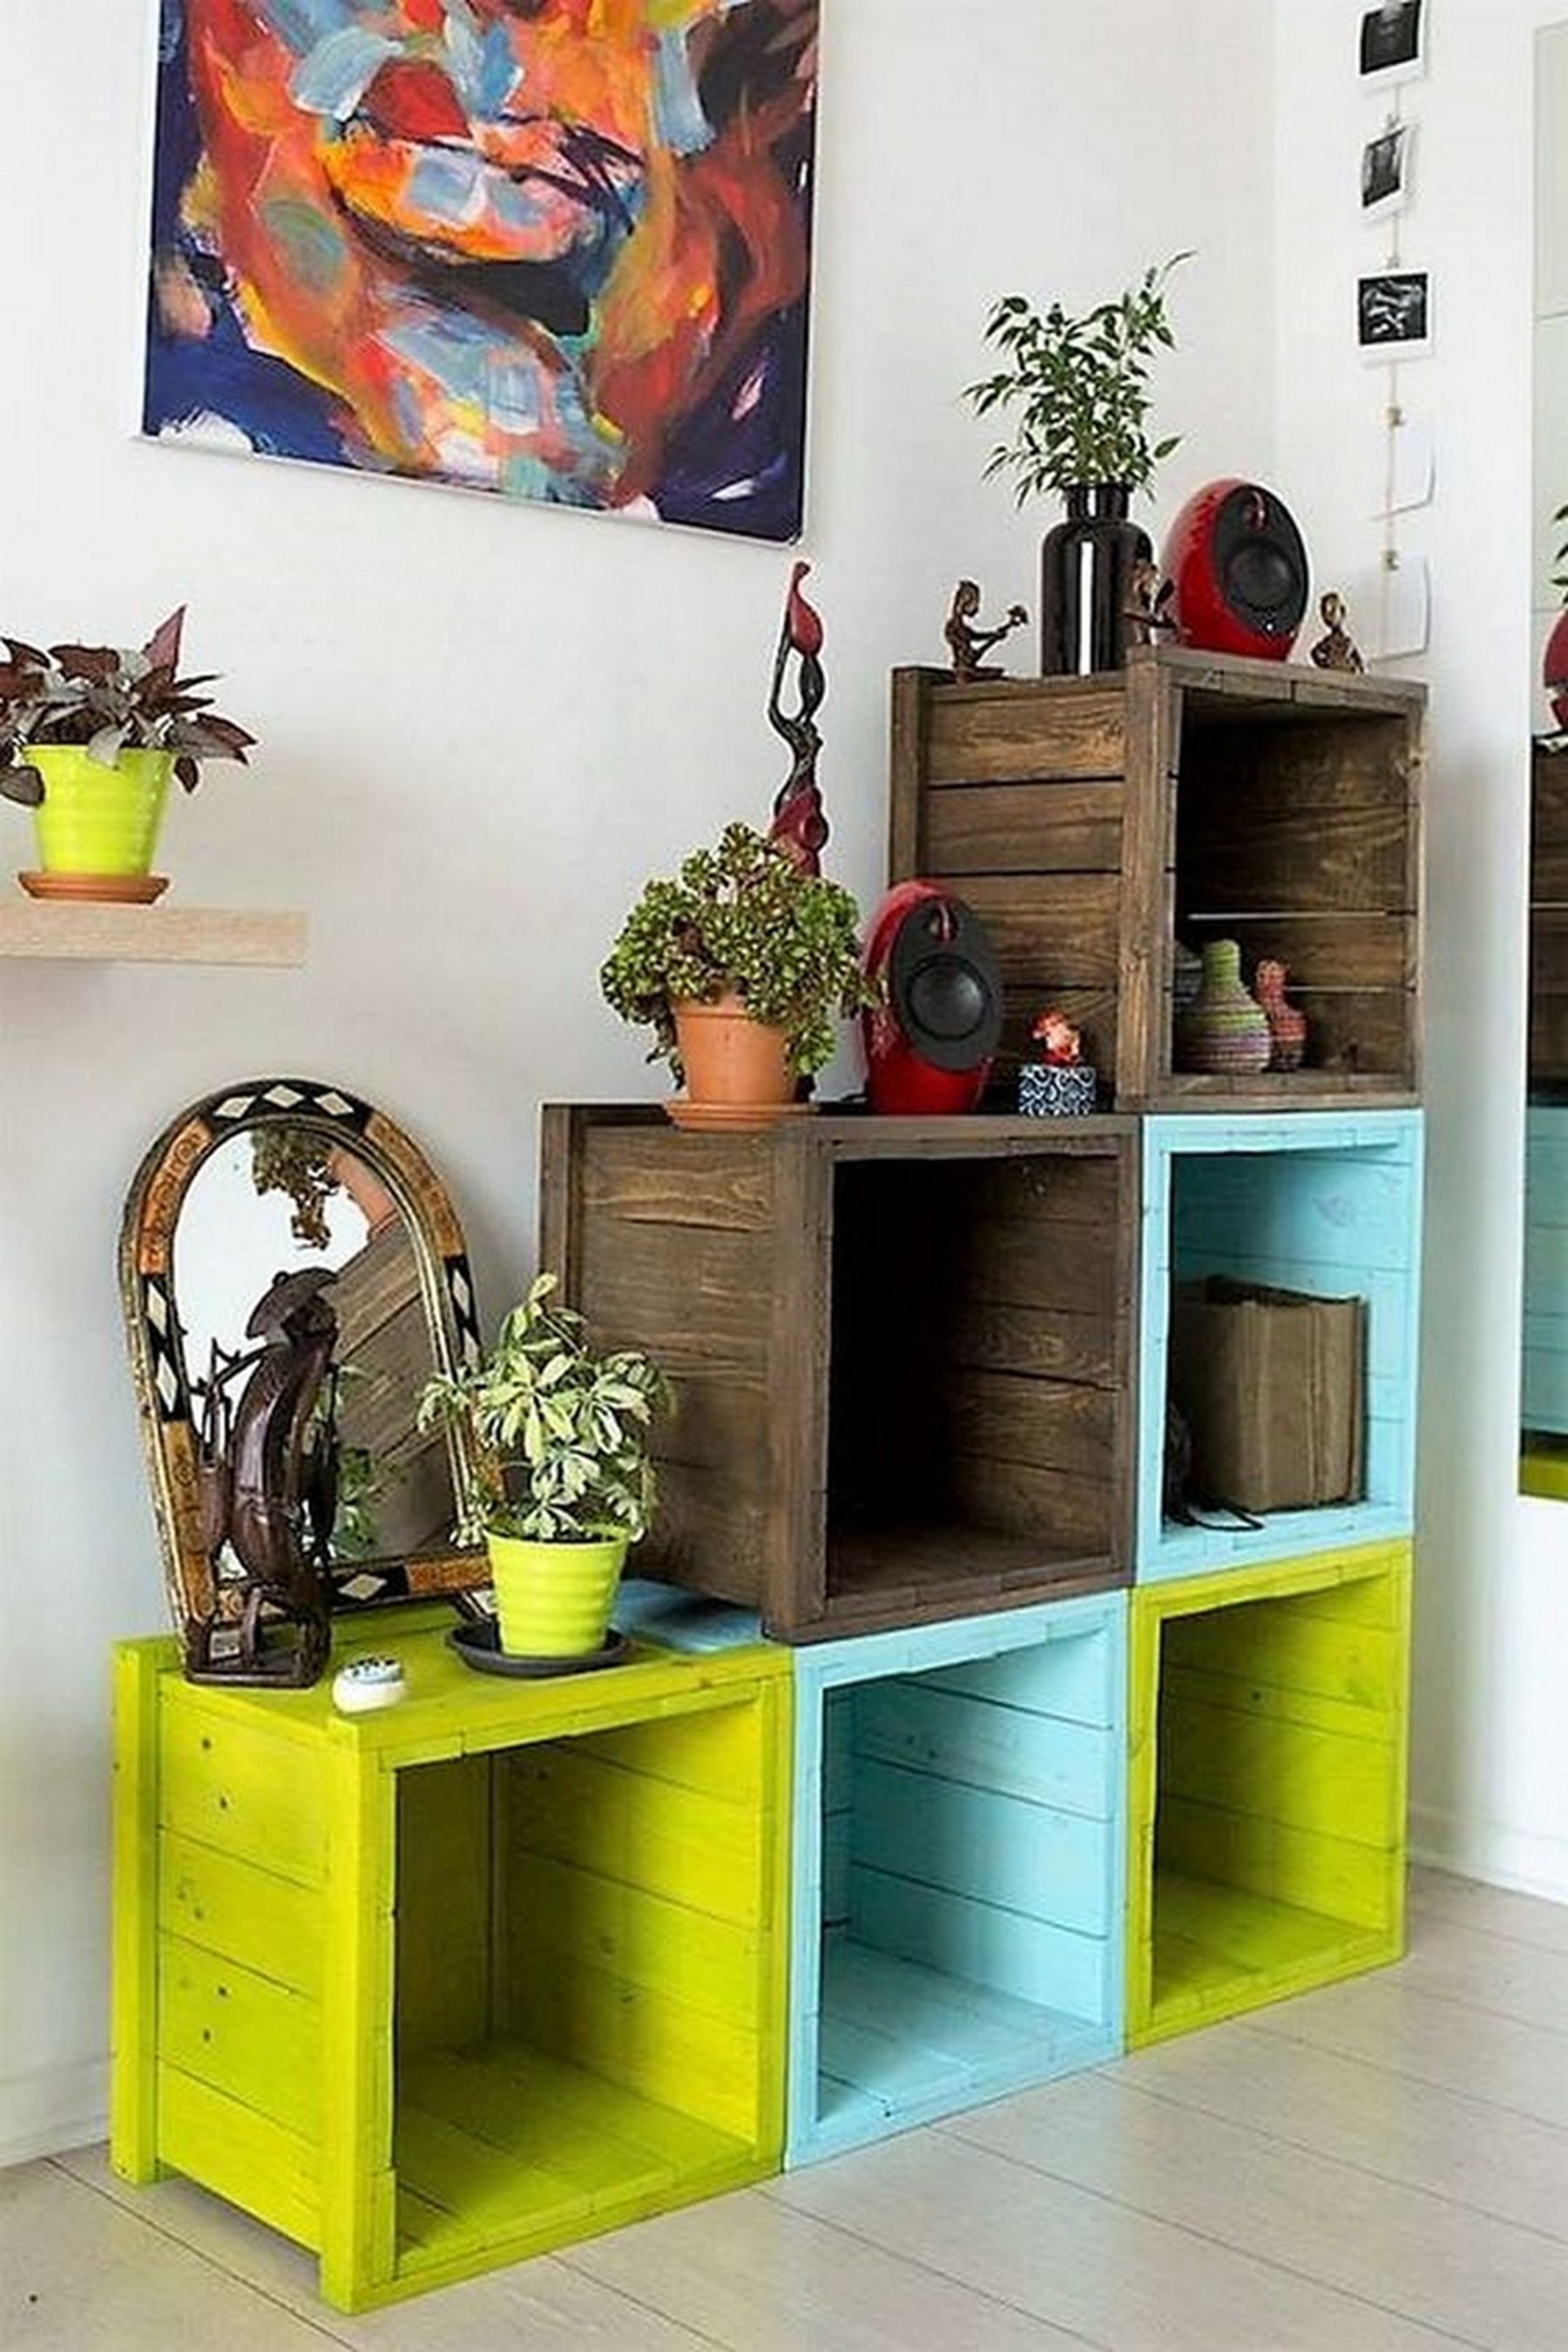 12 Creative Ideas By Using Wooden Pallets To Make Furniture At Home Accessoires De Decoration De Maison Decoration Chambre Bebe Decoration